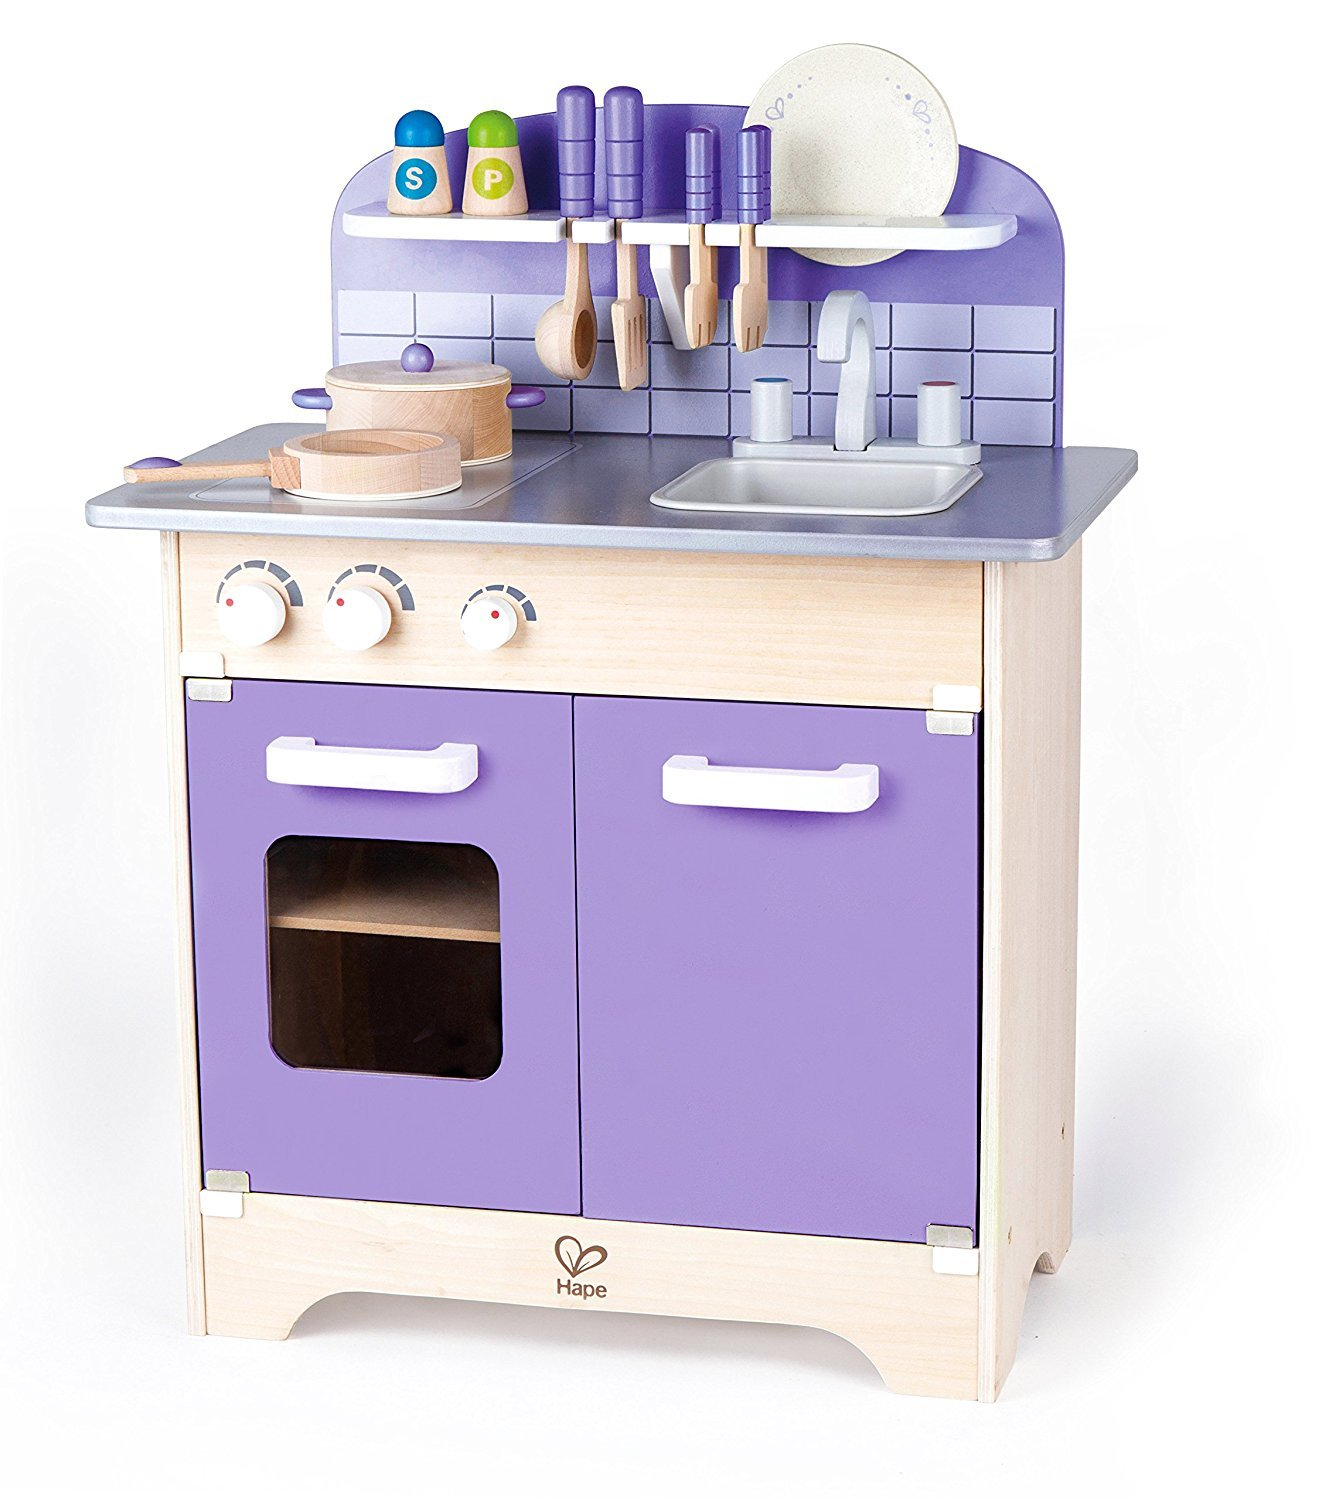 10 best wooden play kitchens for kids top toy kitchens for Kitchen set toys divisoria